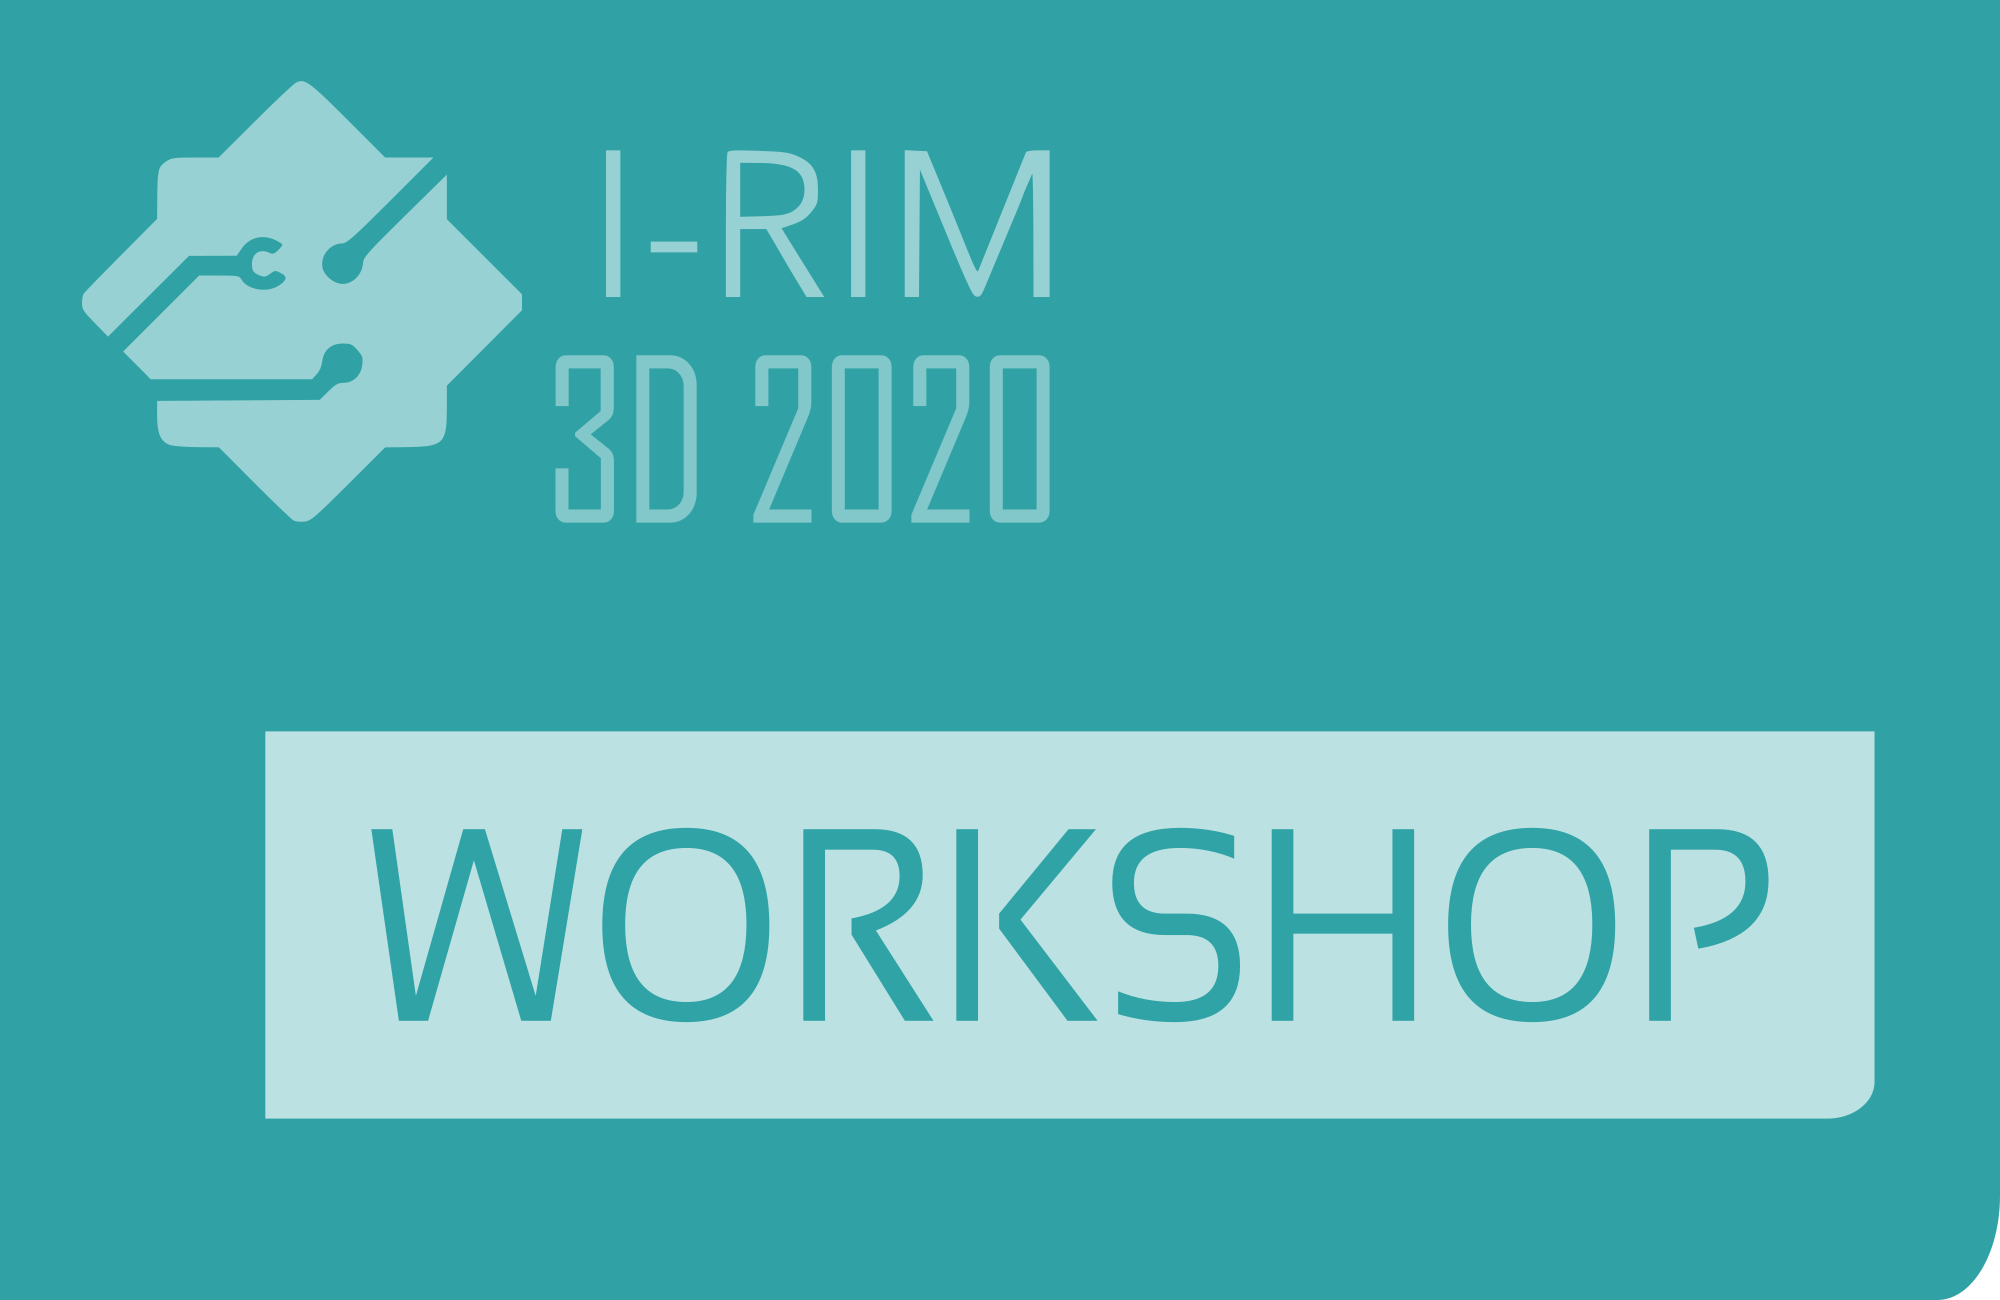 From 3D to 4D printing: a solution to unaddressed medical needs (IRIM-WS154)